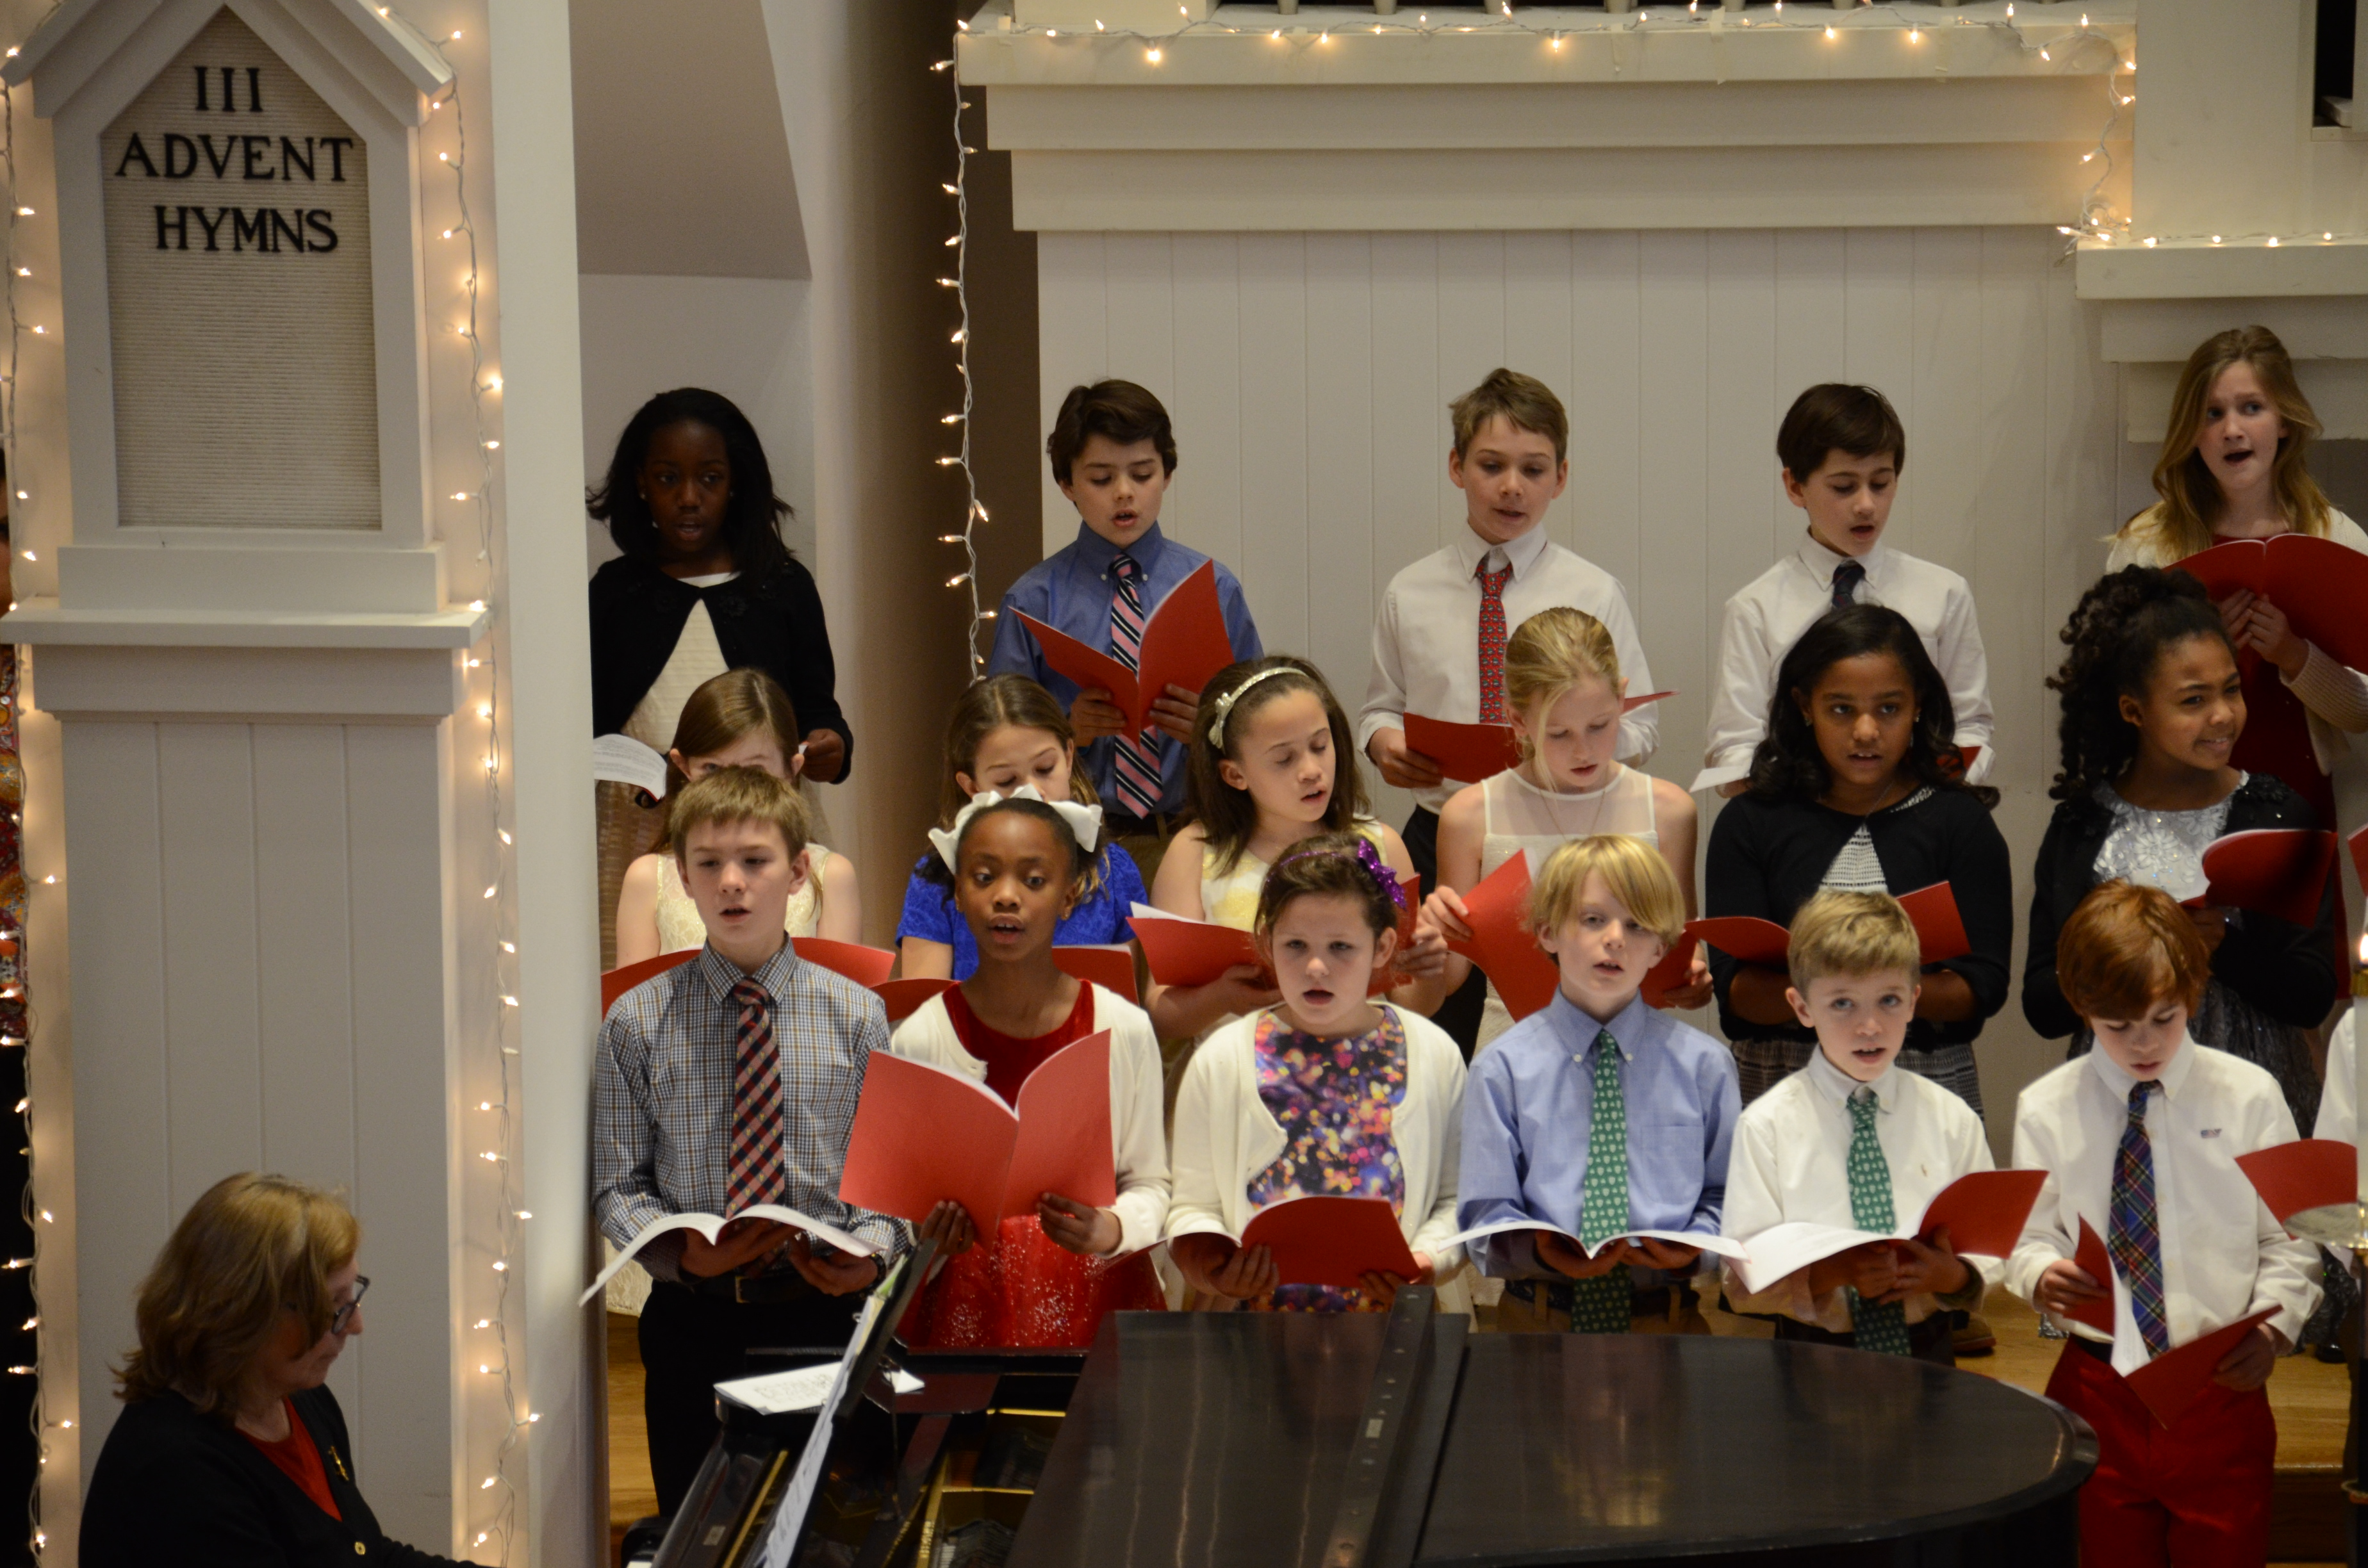 Lower school students singing